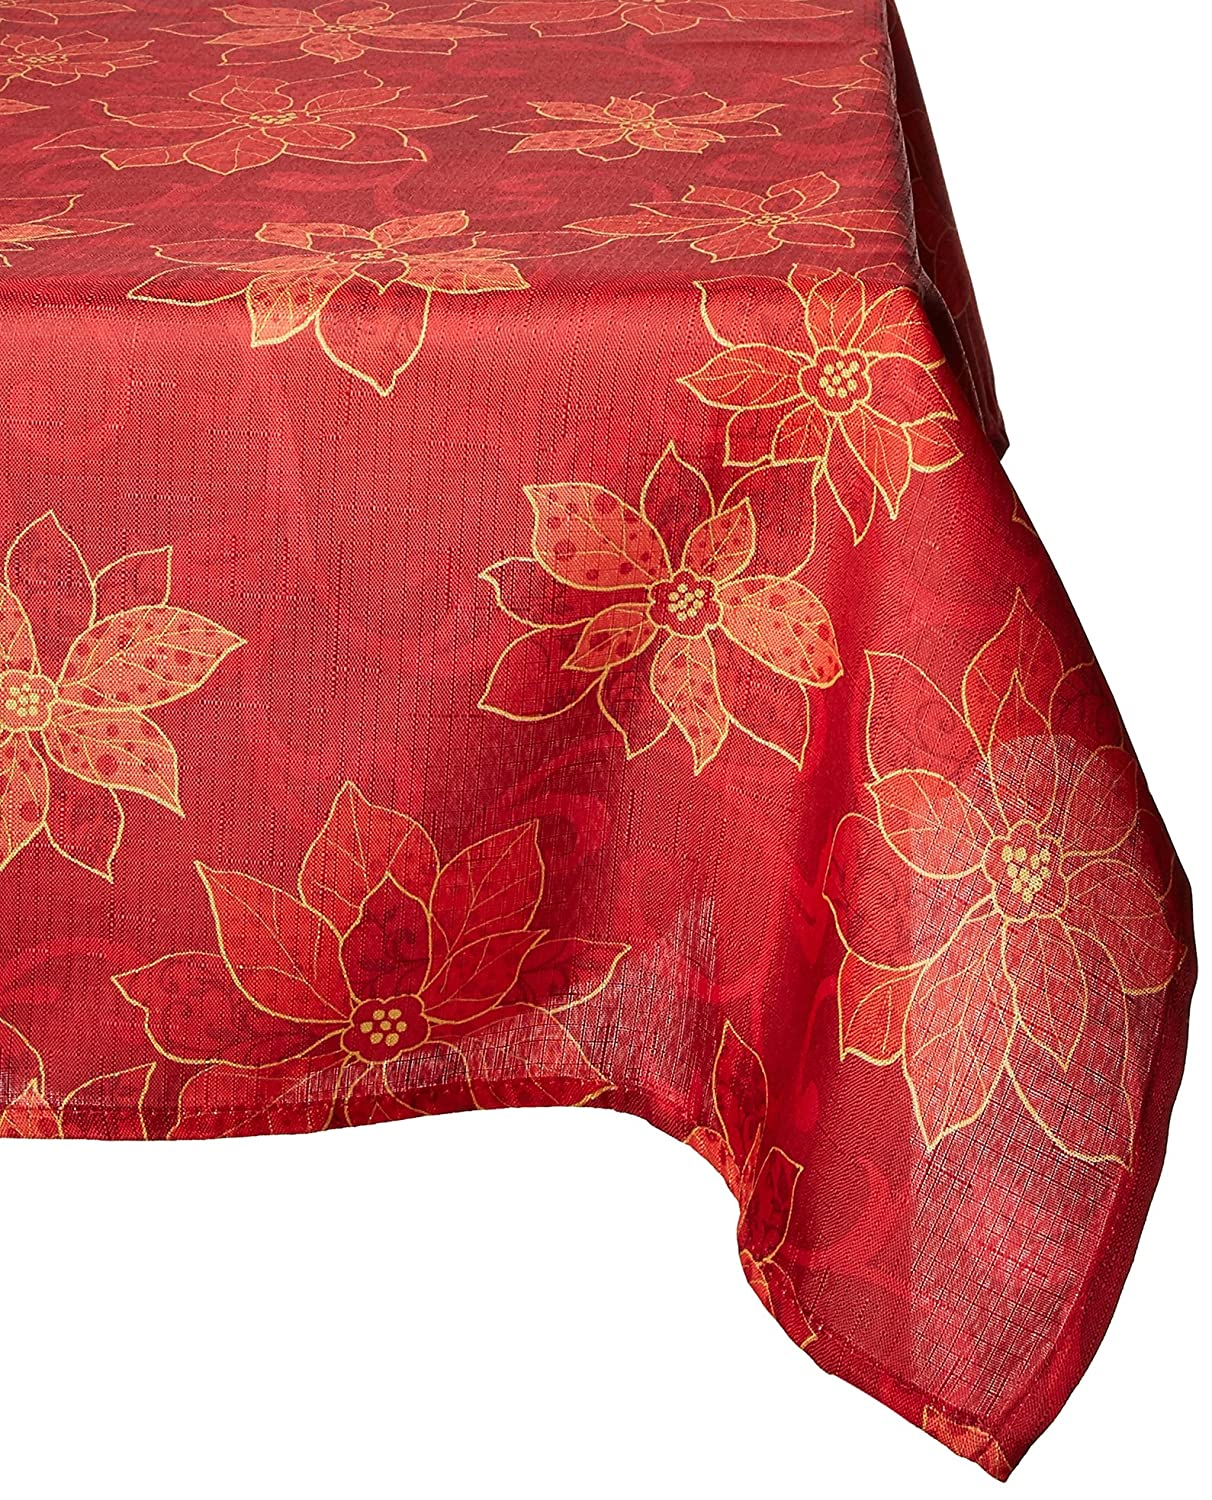 Benson Mills Poinsettia Scroll Printed Fabric Tablecloth, 52-Inch-By-70 Inch 8697